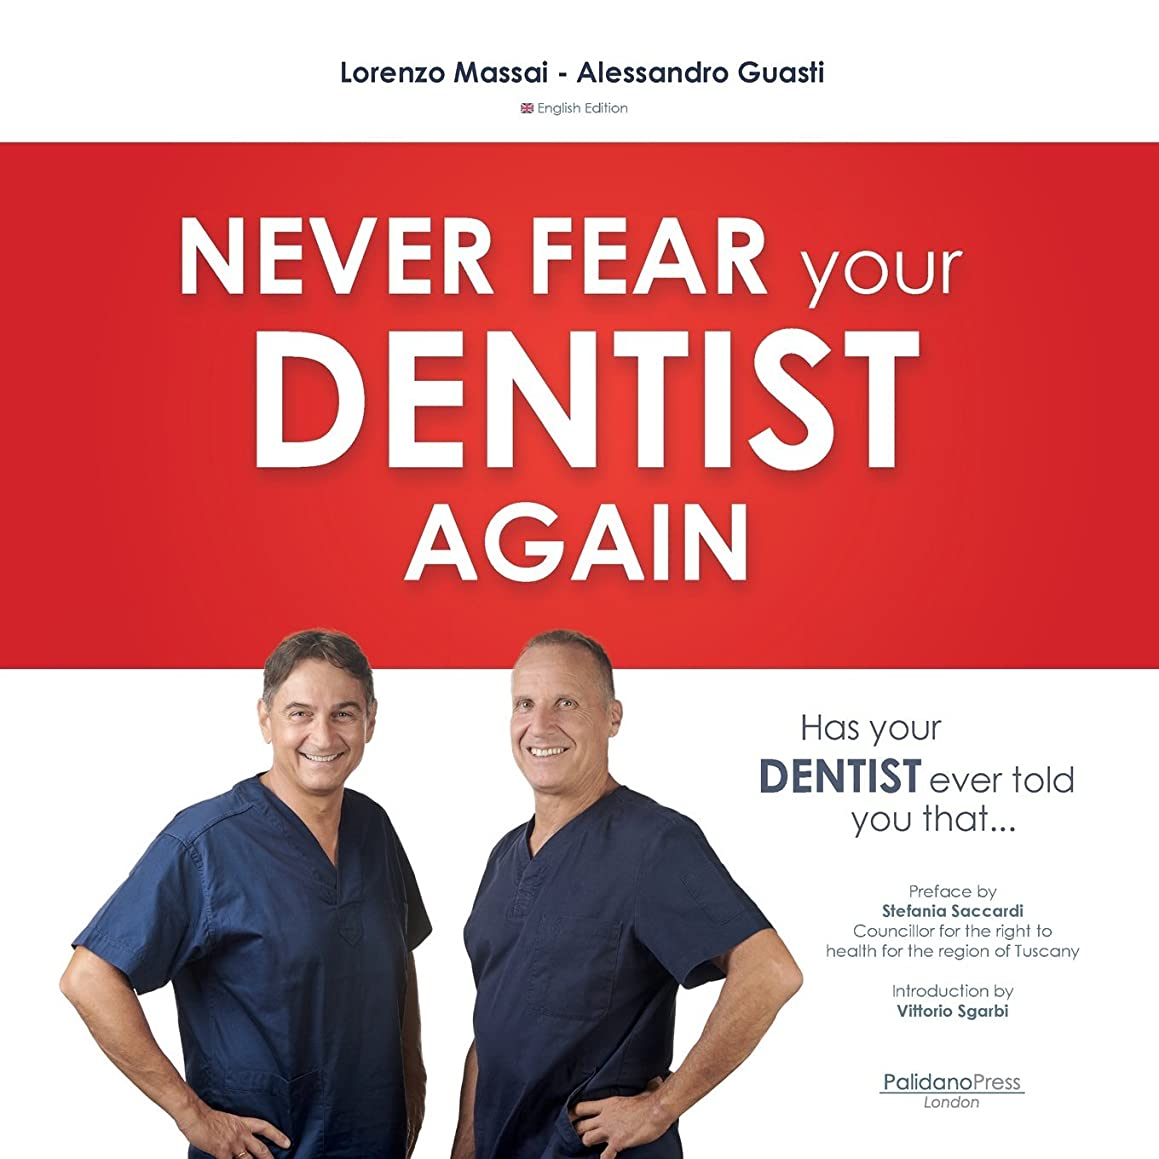 Has Your Dentist Ever Told You That ...: Never Fear Your Dentist Again